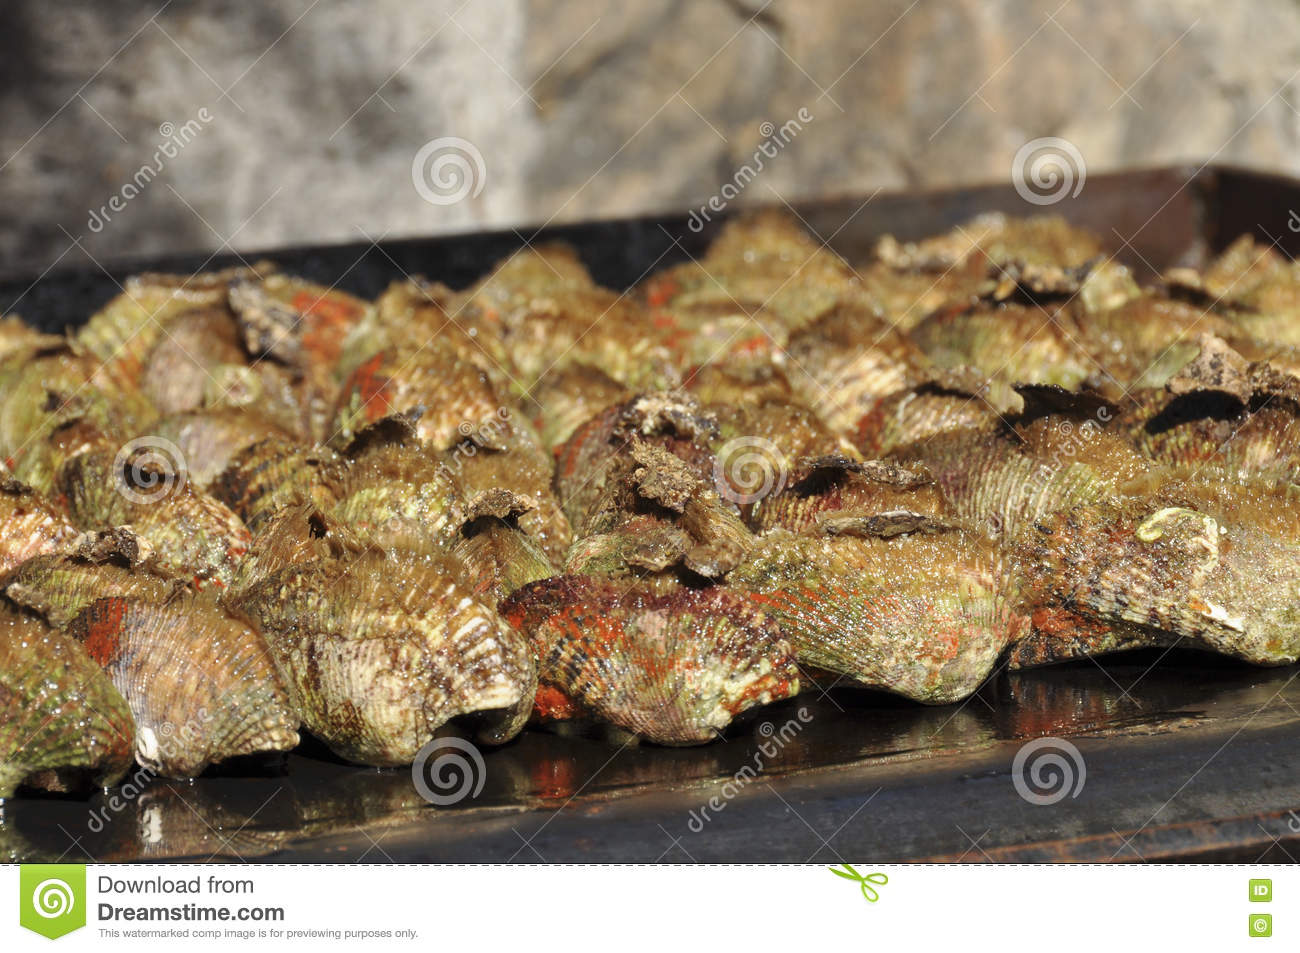 Ark clams on grill stock image  Image of delicious, marine - 80249917